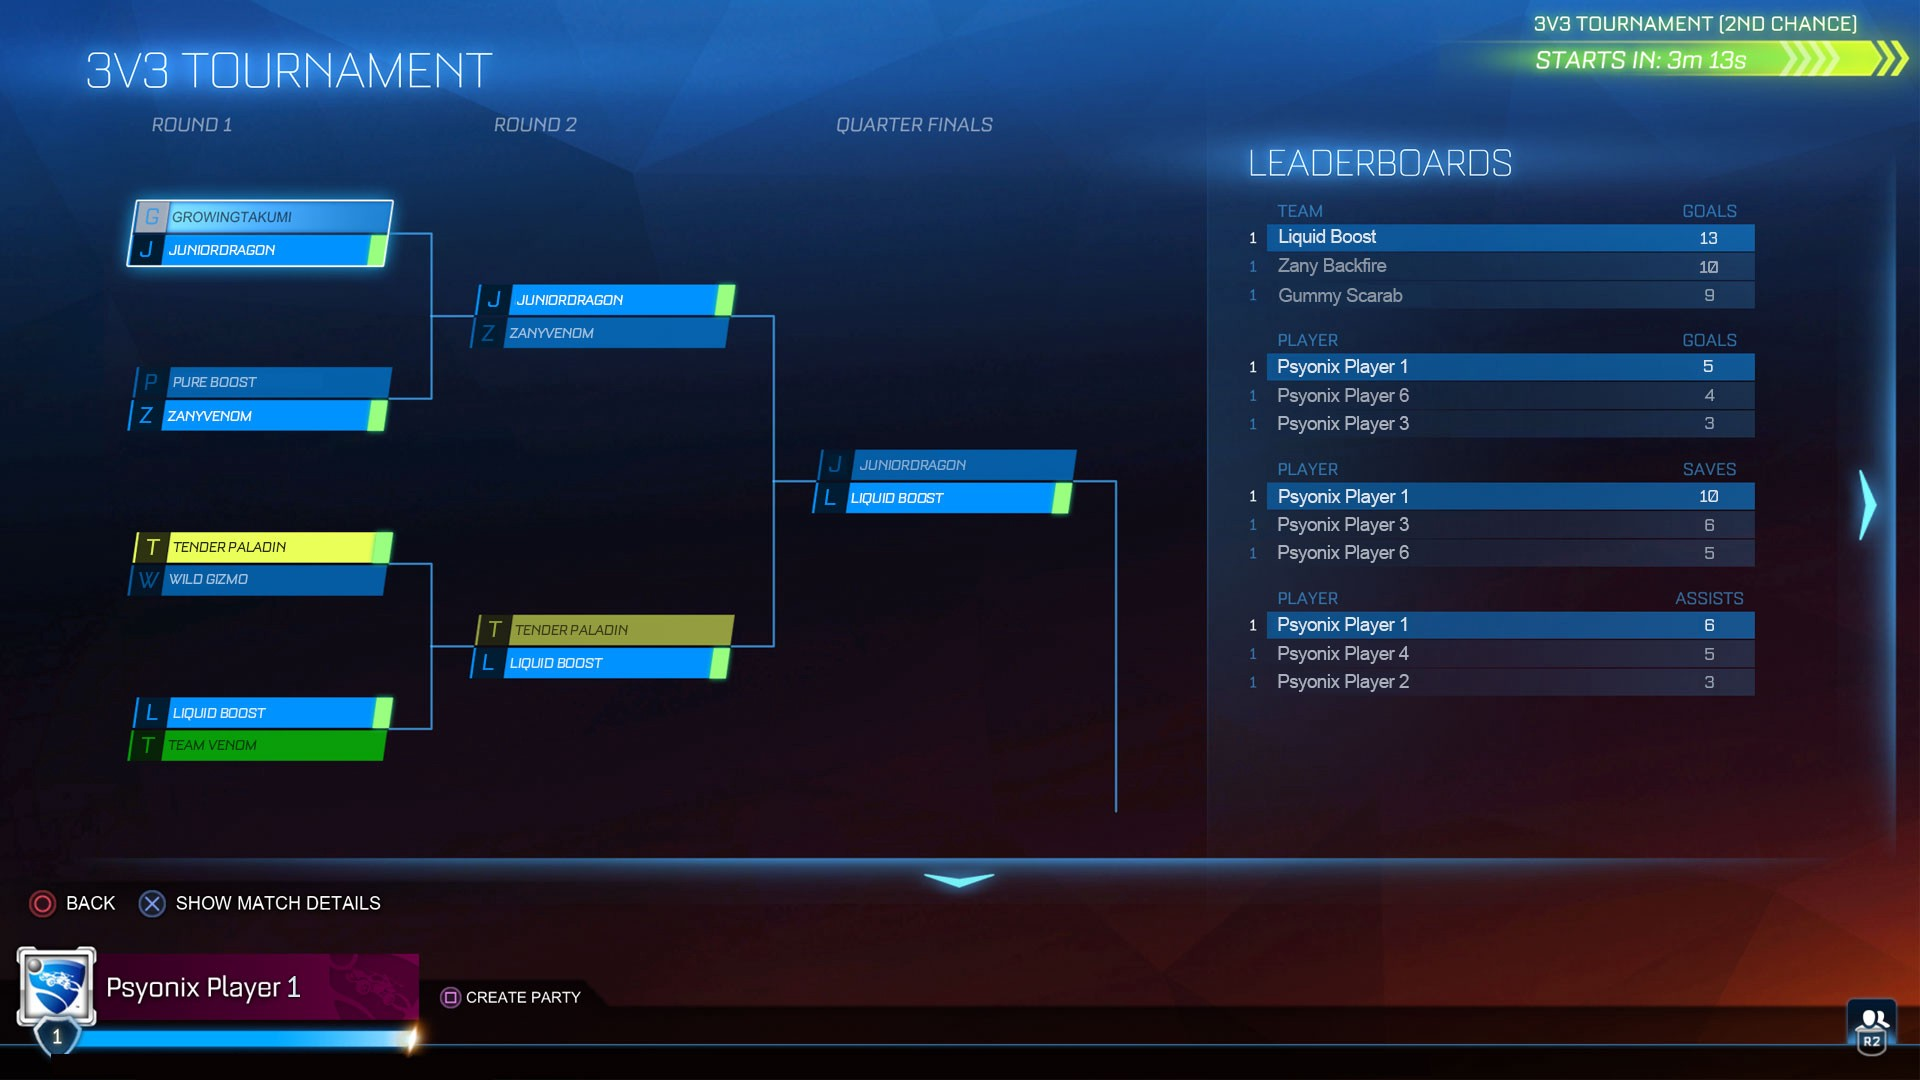 Rocket League Tournament Bracket.